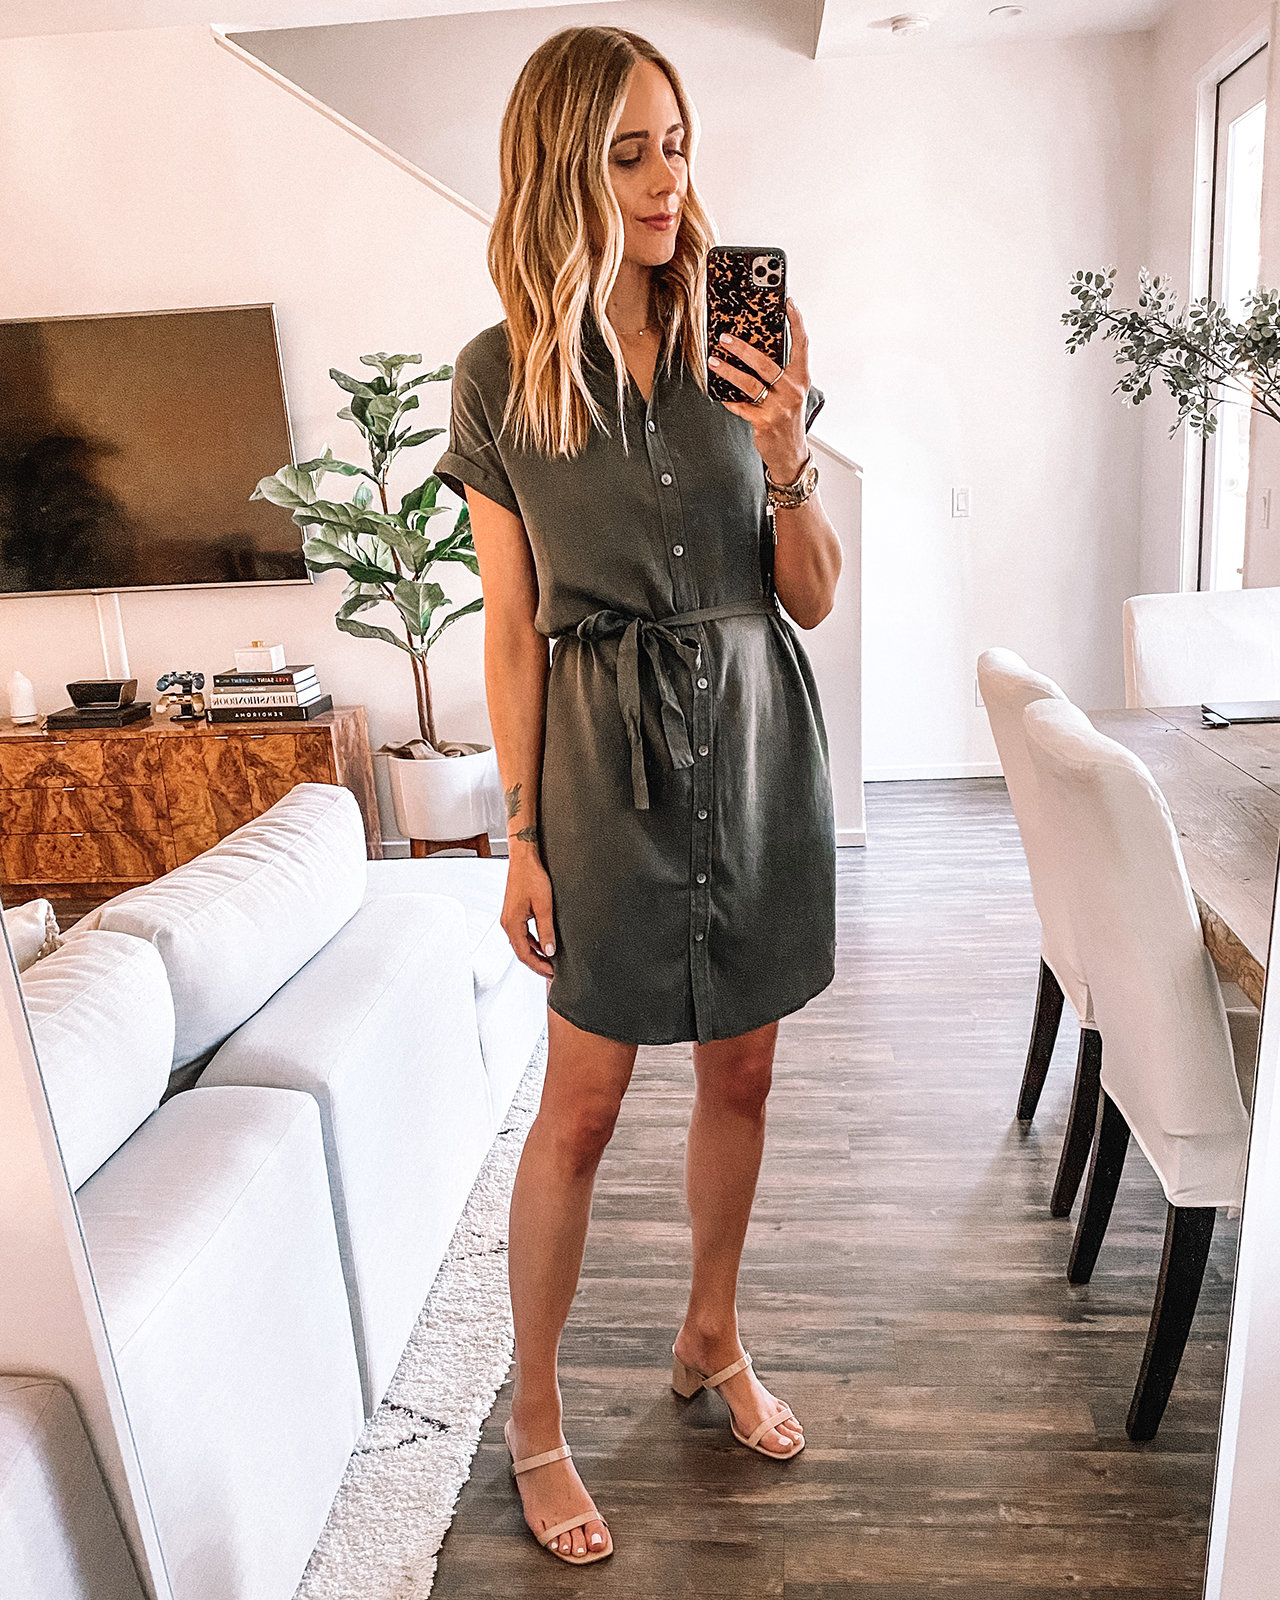 Fashion Jackson Wearing Amazon Daily Ritual Black Shirtdress Tan Sandals